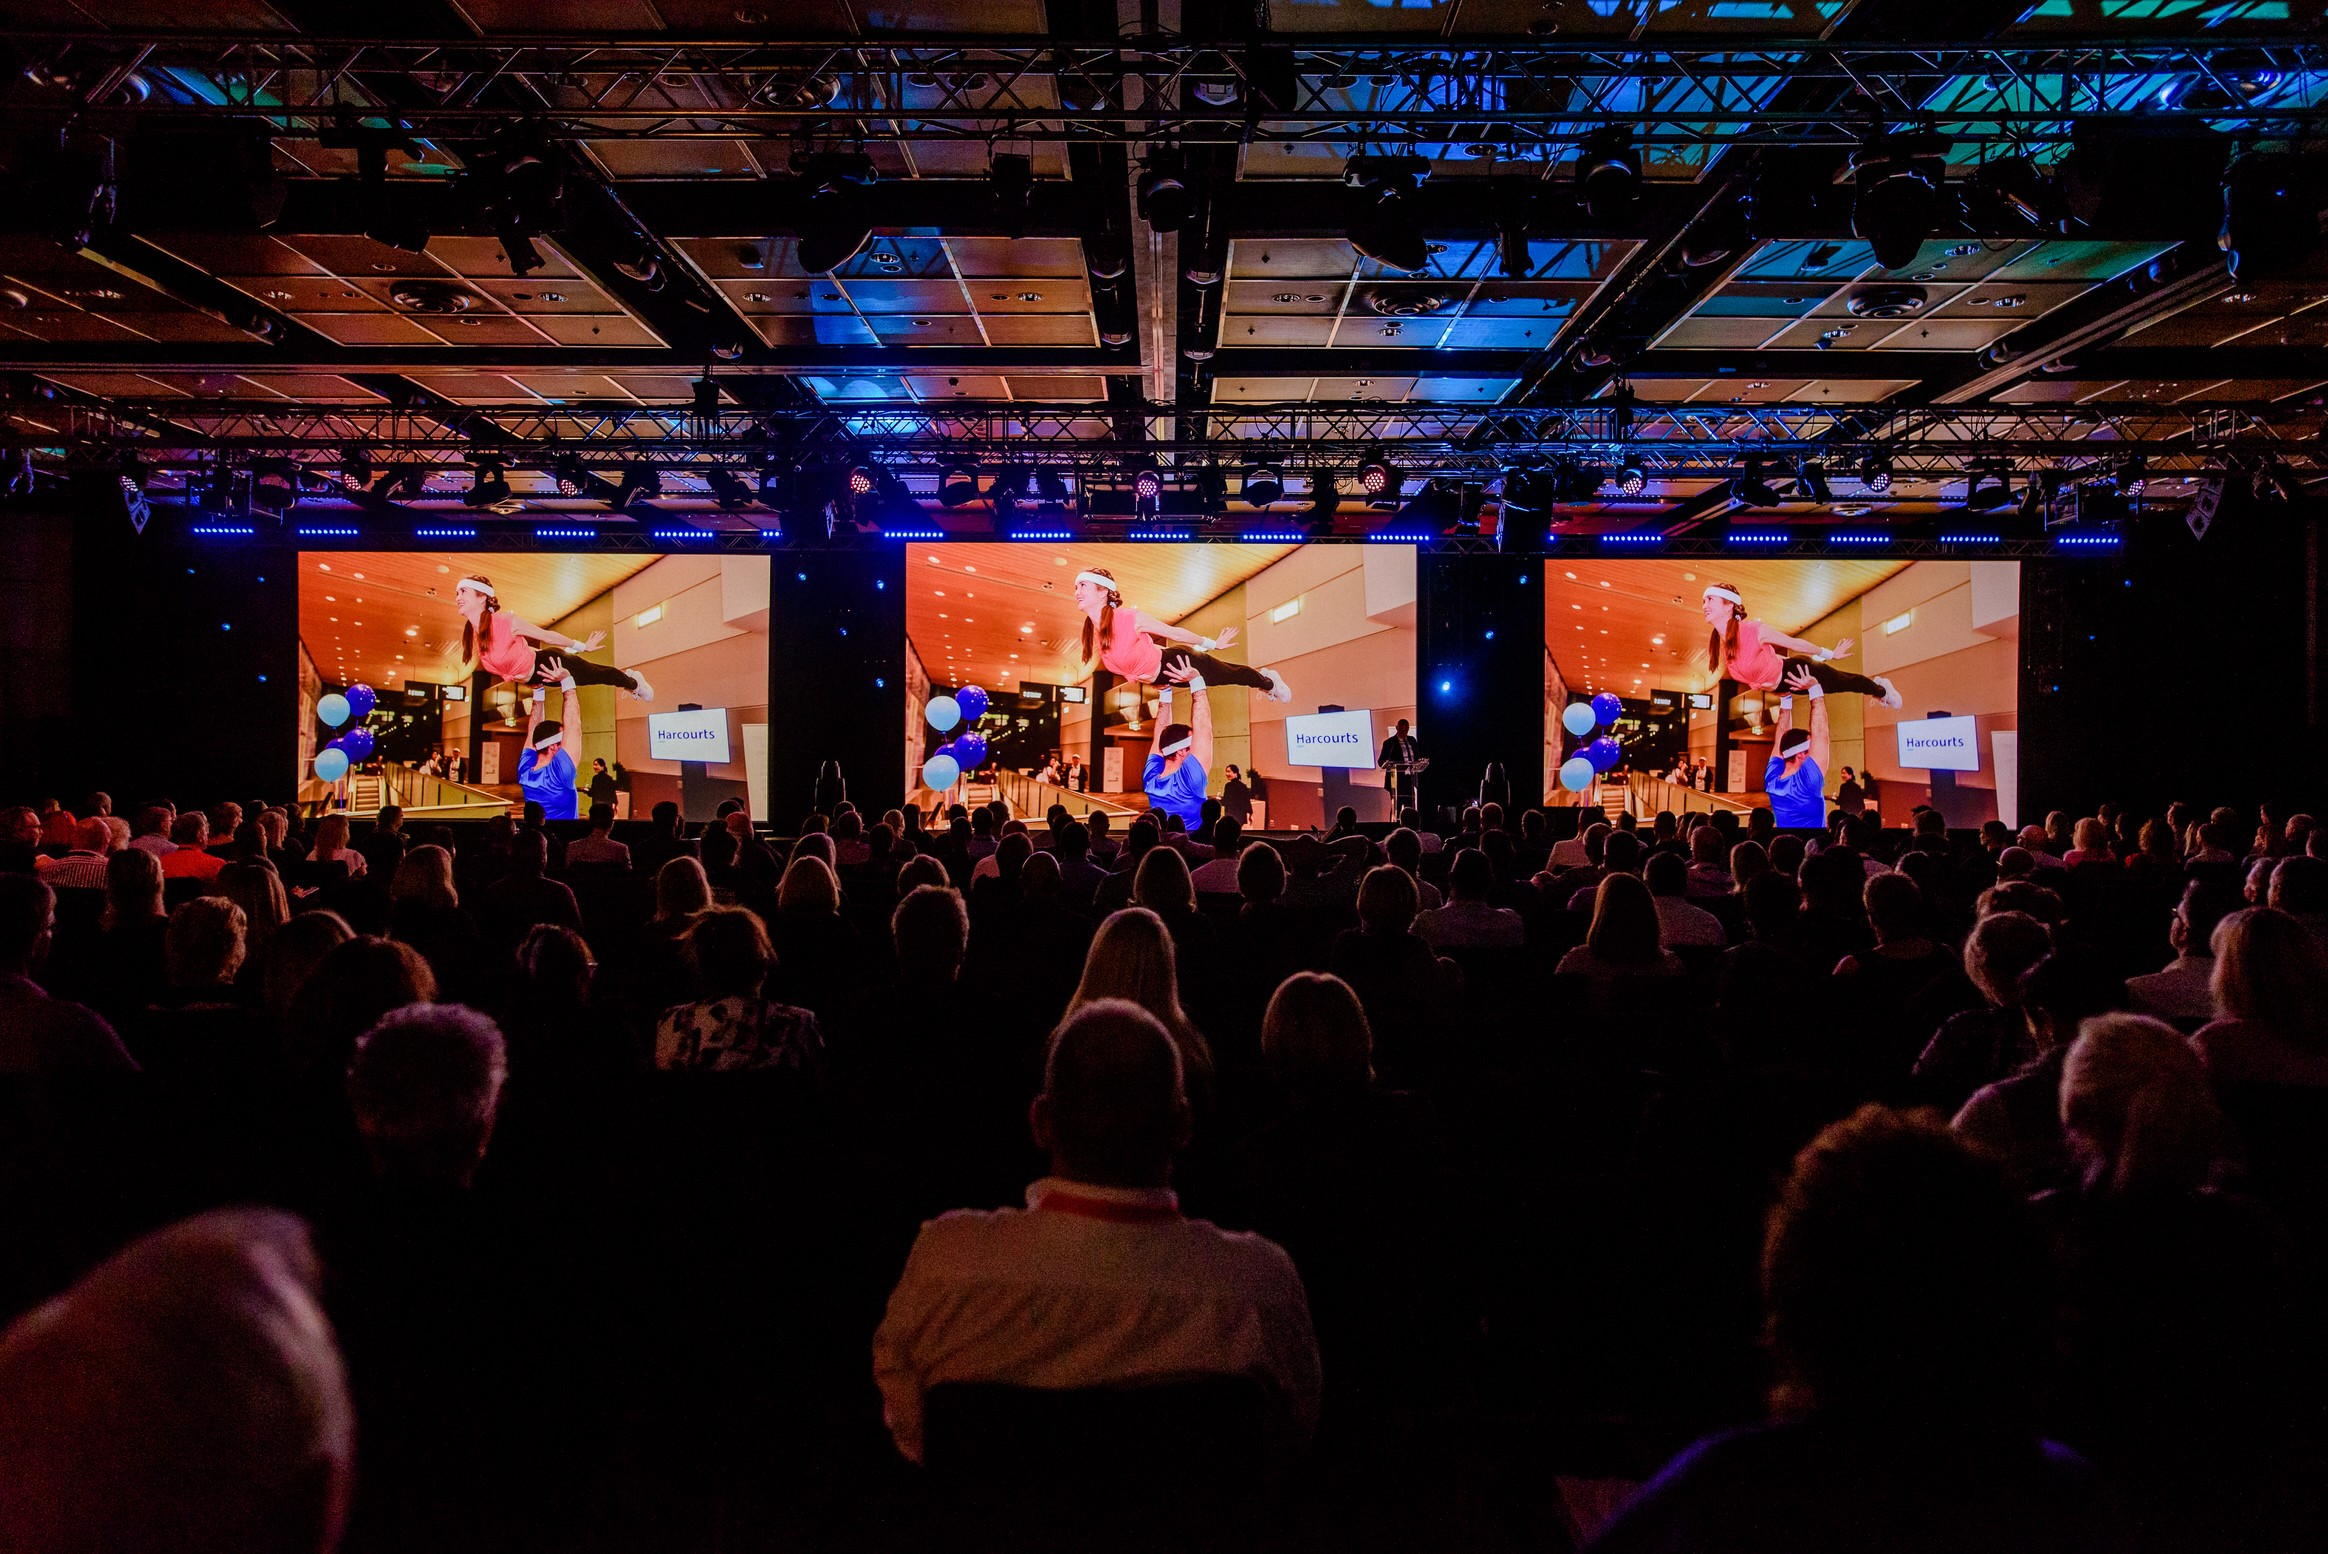 event, entertainment, crowd, skycity, corporate, venue, auckland